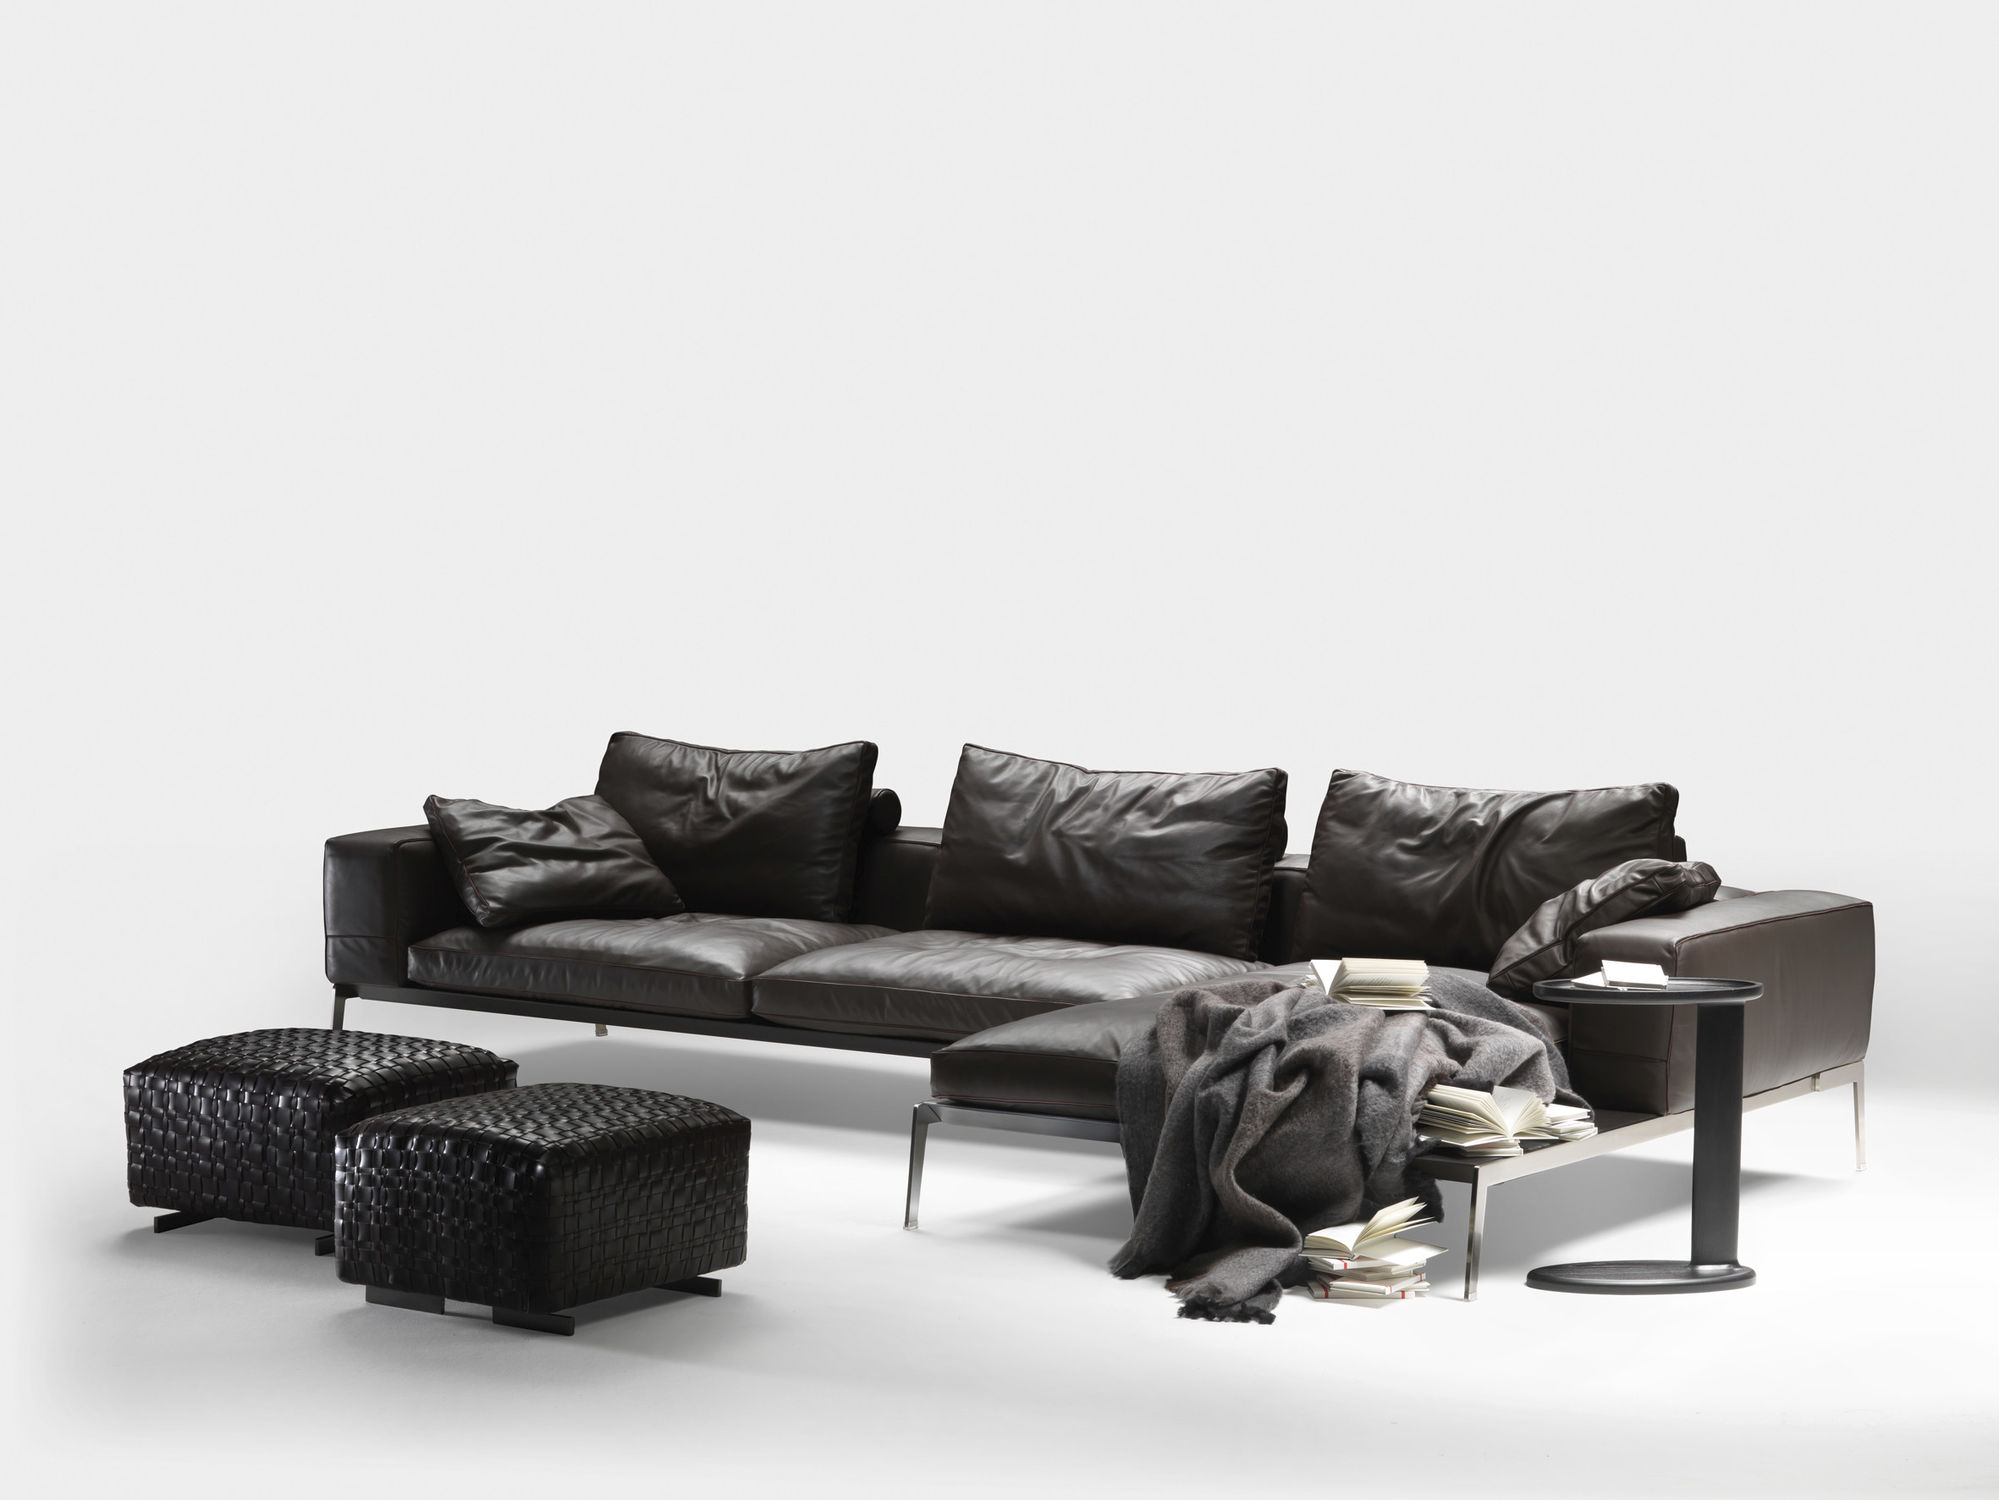 Modular Sofa / Contemporary / Fabric / Leather   LIFESTEEL